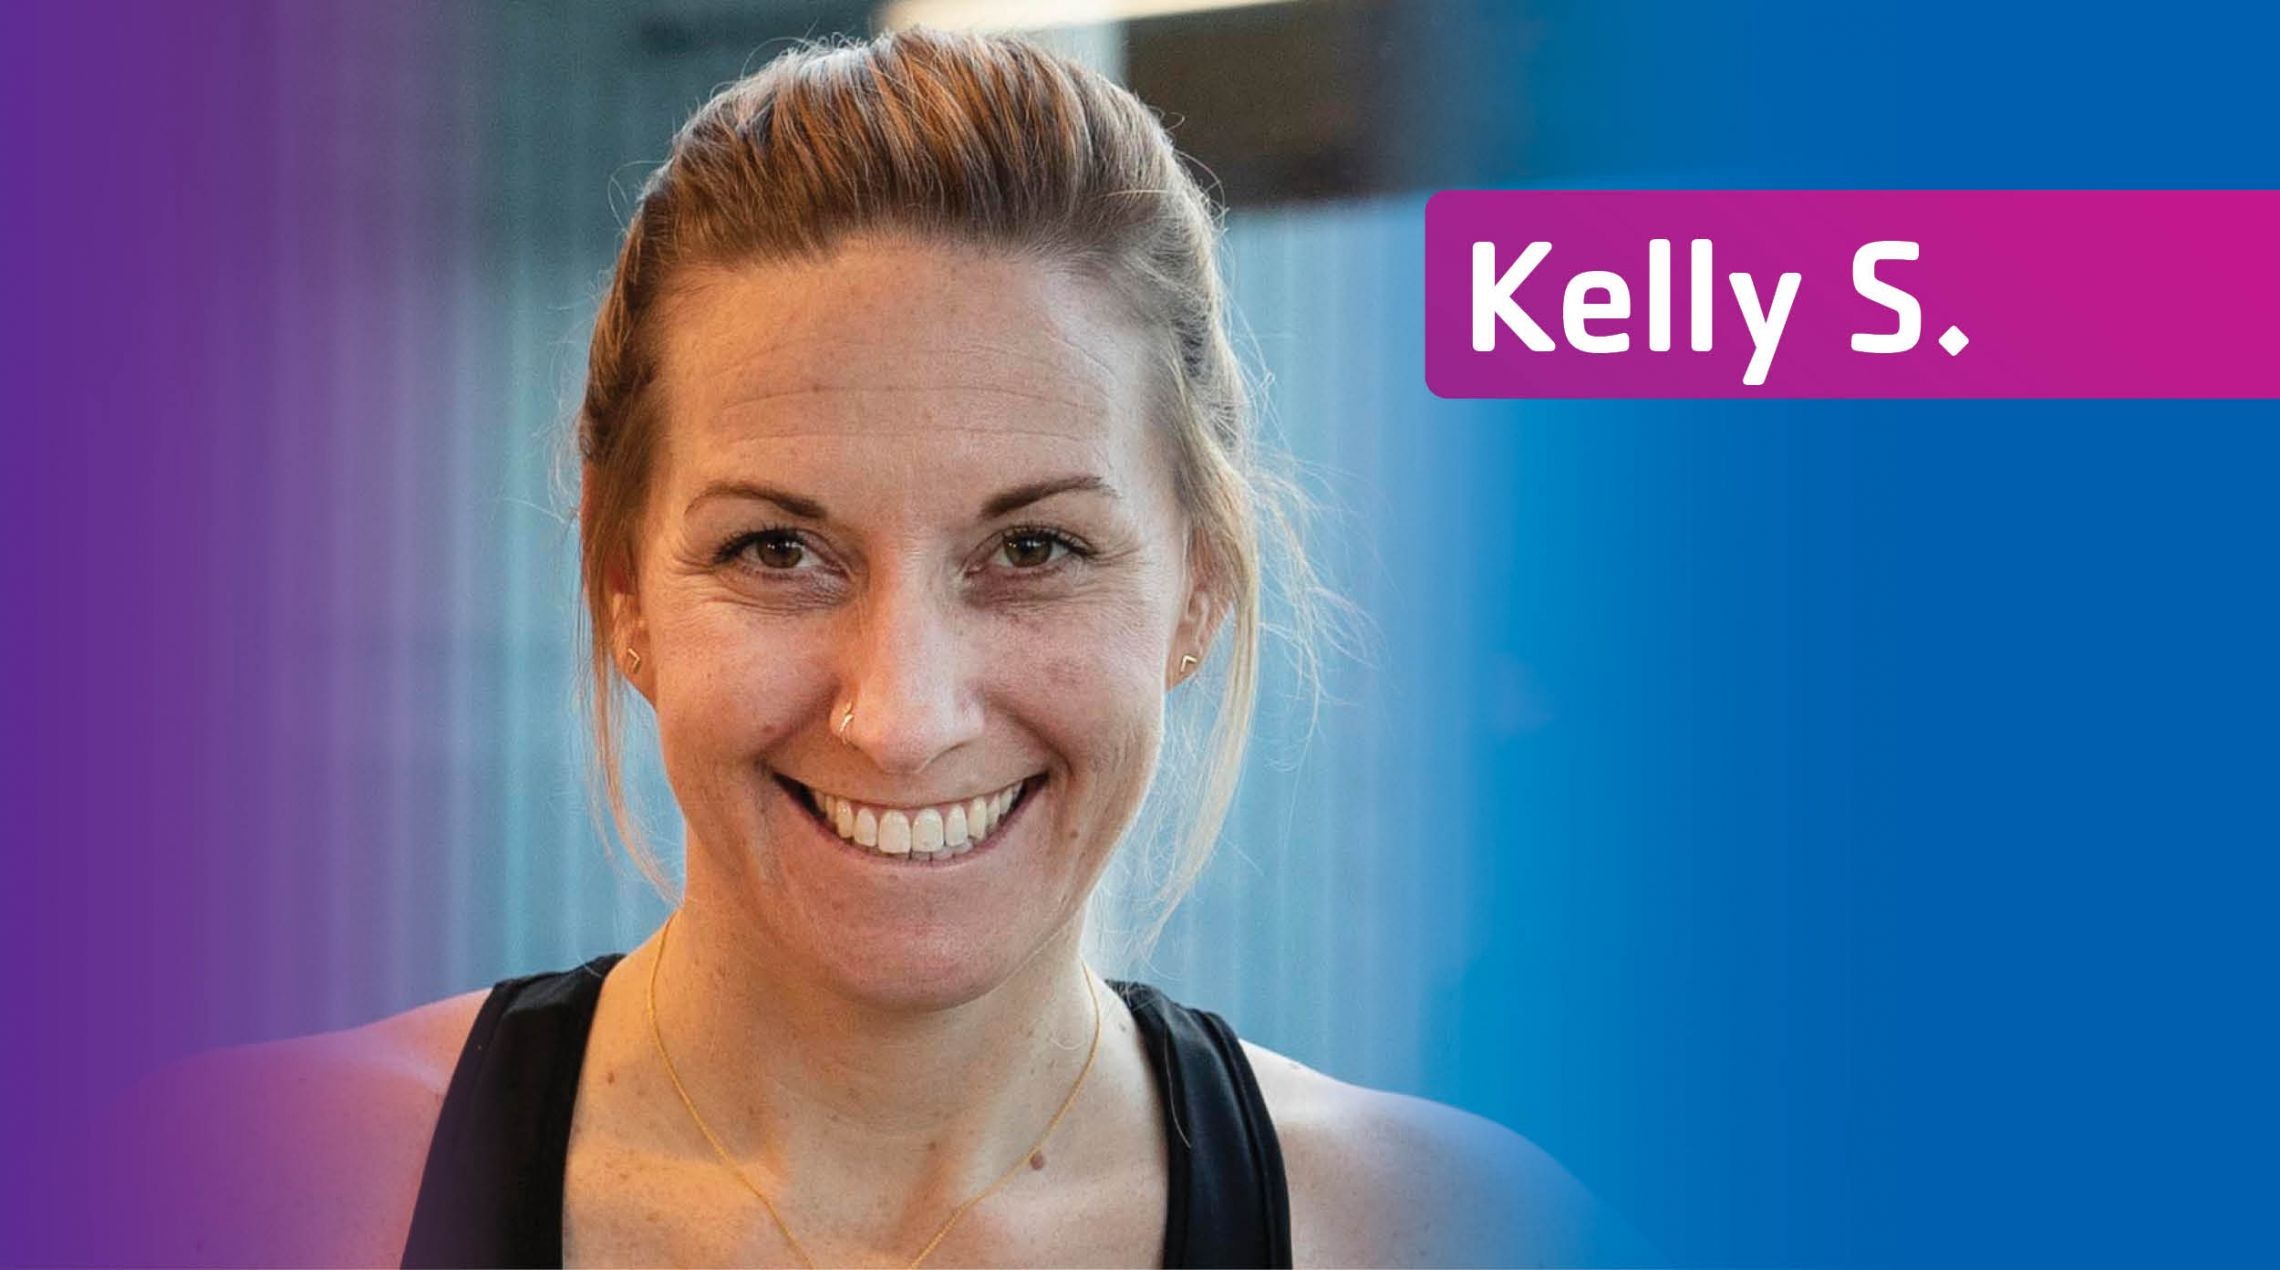 Instructor Kelly S